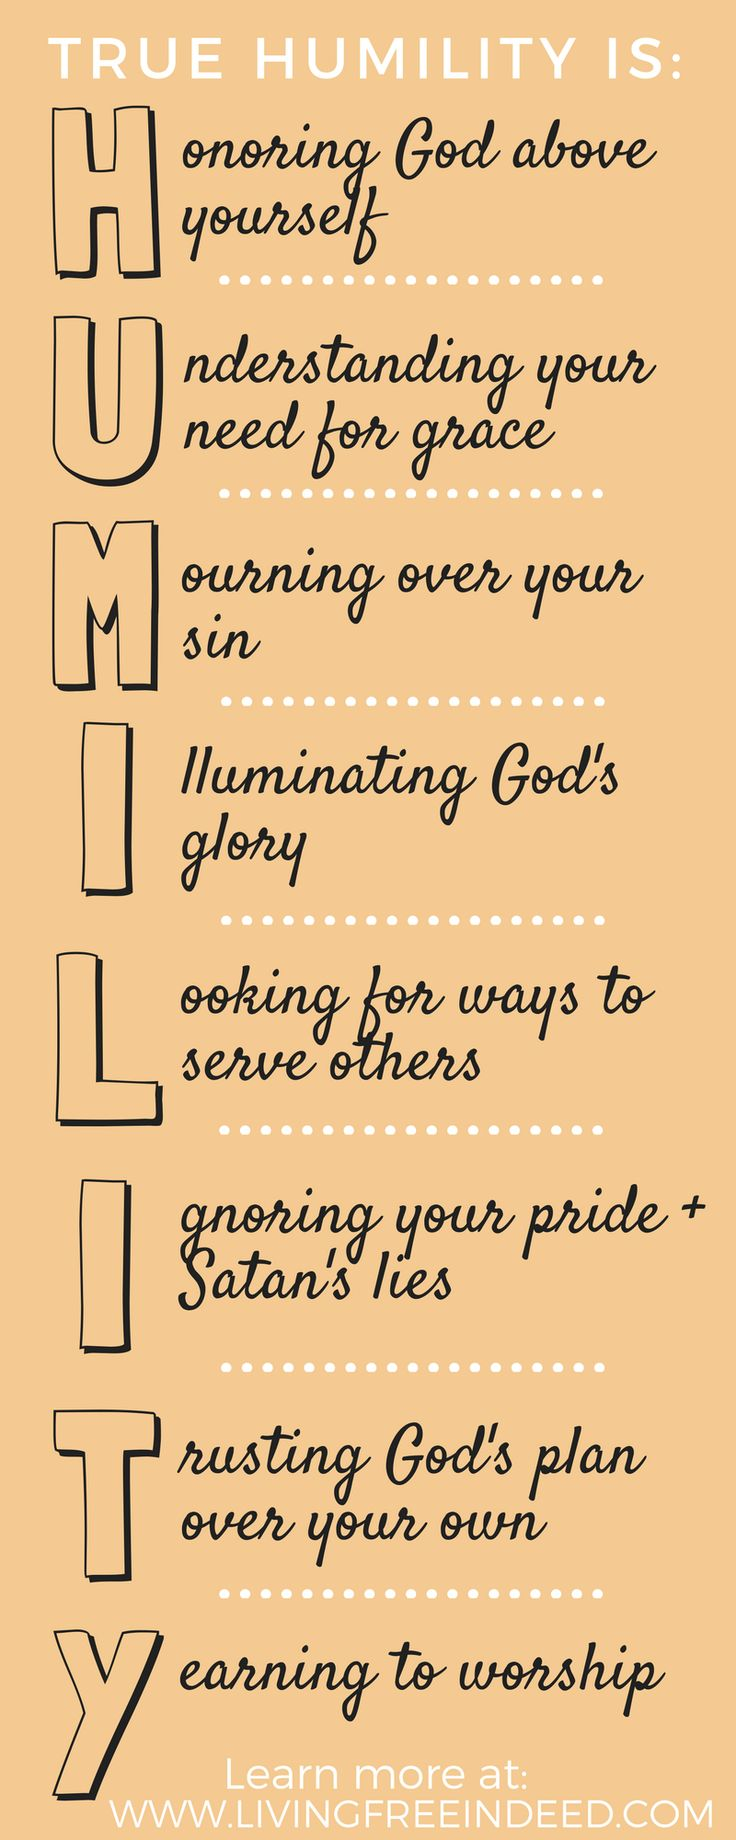 Humility actively recognizes God for who He truly is—your Creator, the Mighty One, the Savior, the Eternal King.